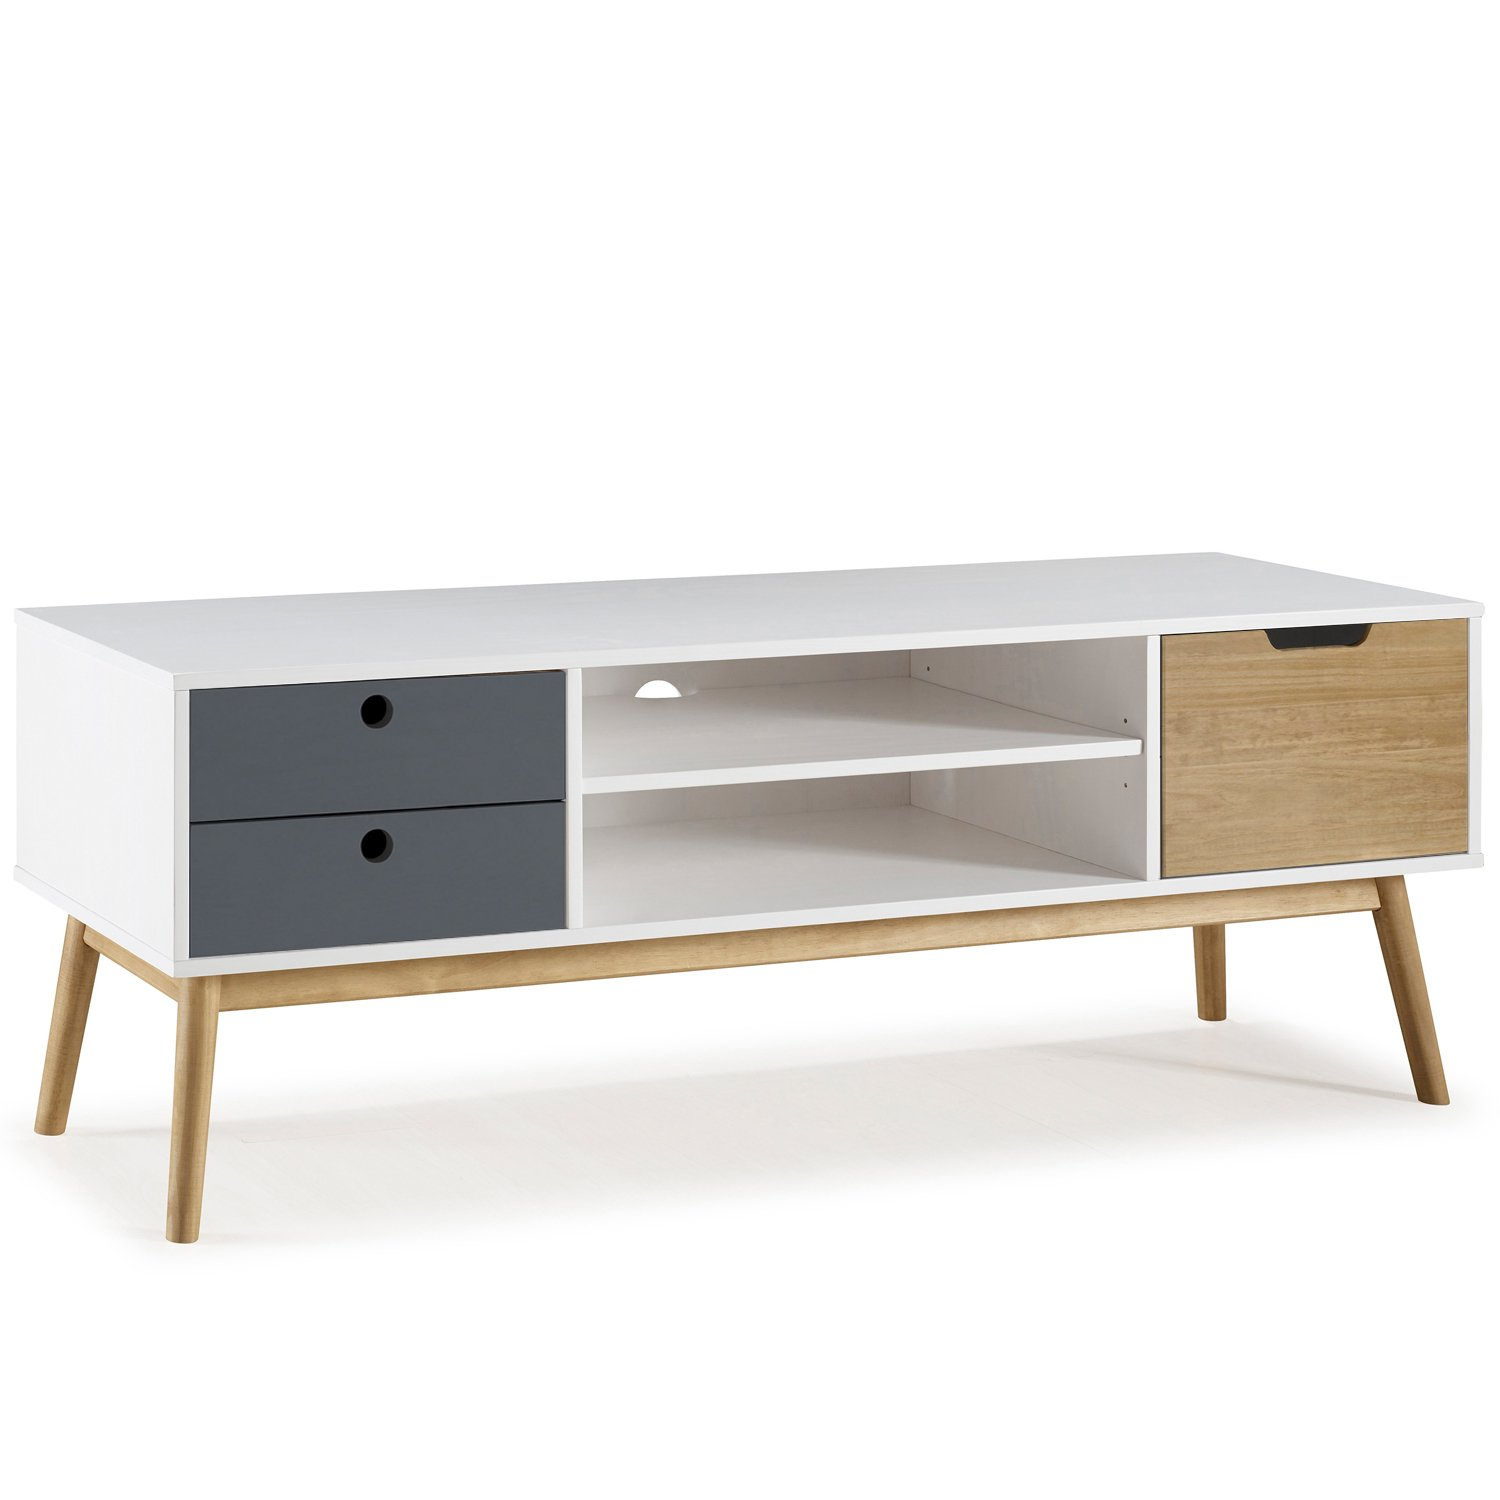 Meuble Tv Vero Scandinave - Meuble Tv Leti Blanc Fabriqu En Bois De Pin Massif 1 Porte Y 2 [mjhdah]https://image.but.fr/is/image/but/8435178302779_F?$produit_xl$&wid=1158&hei=1288&fit=fit,1